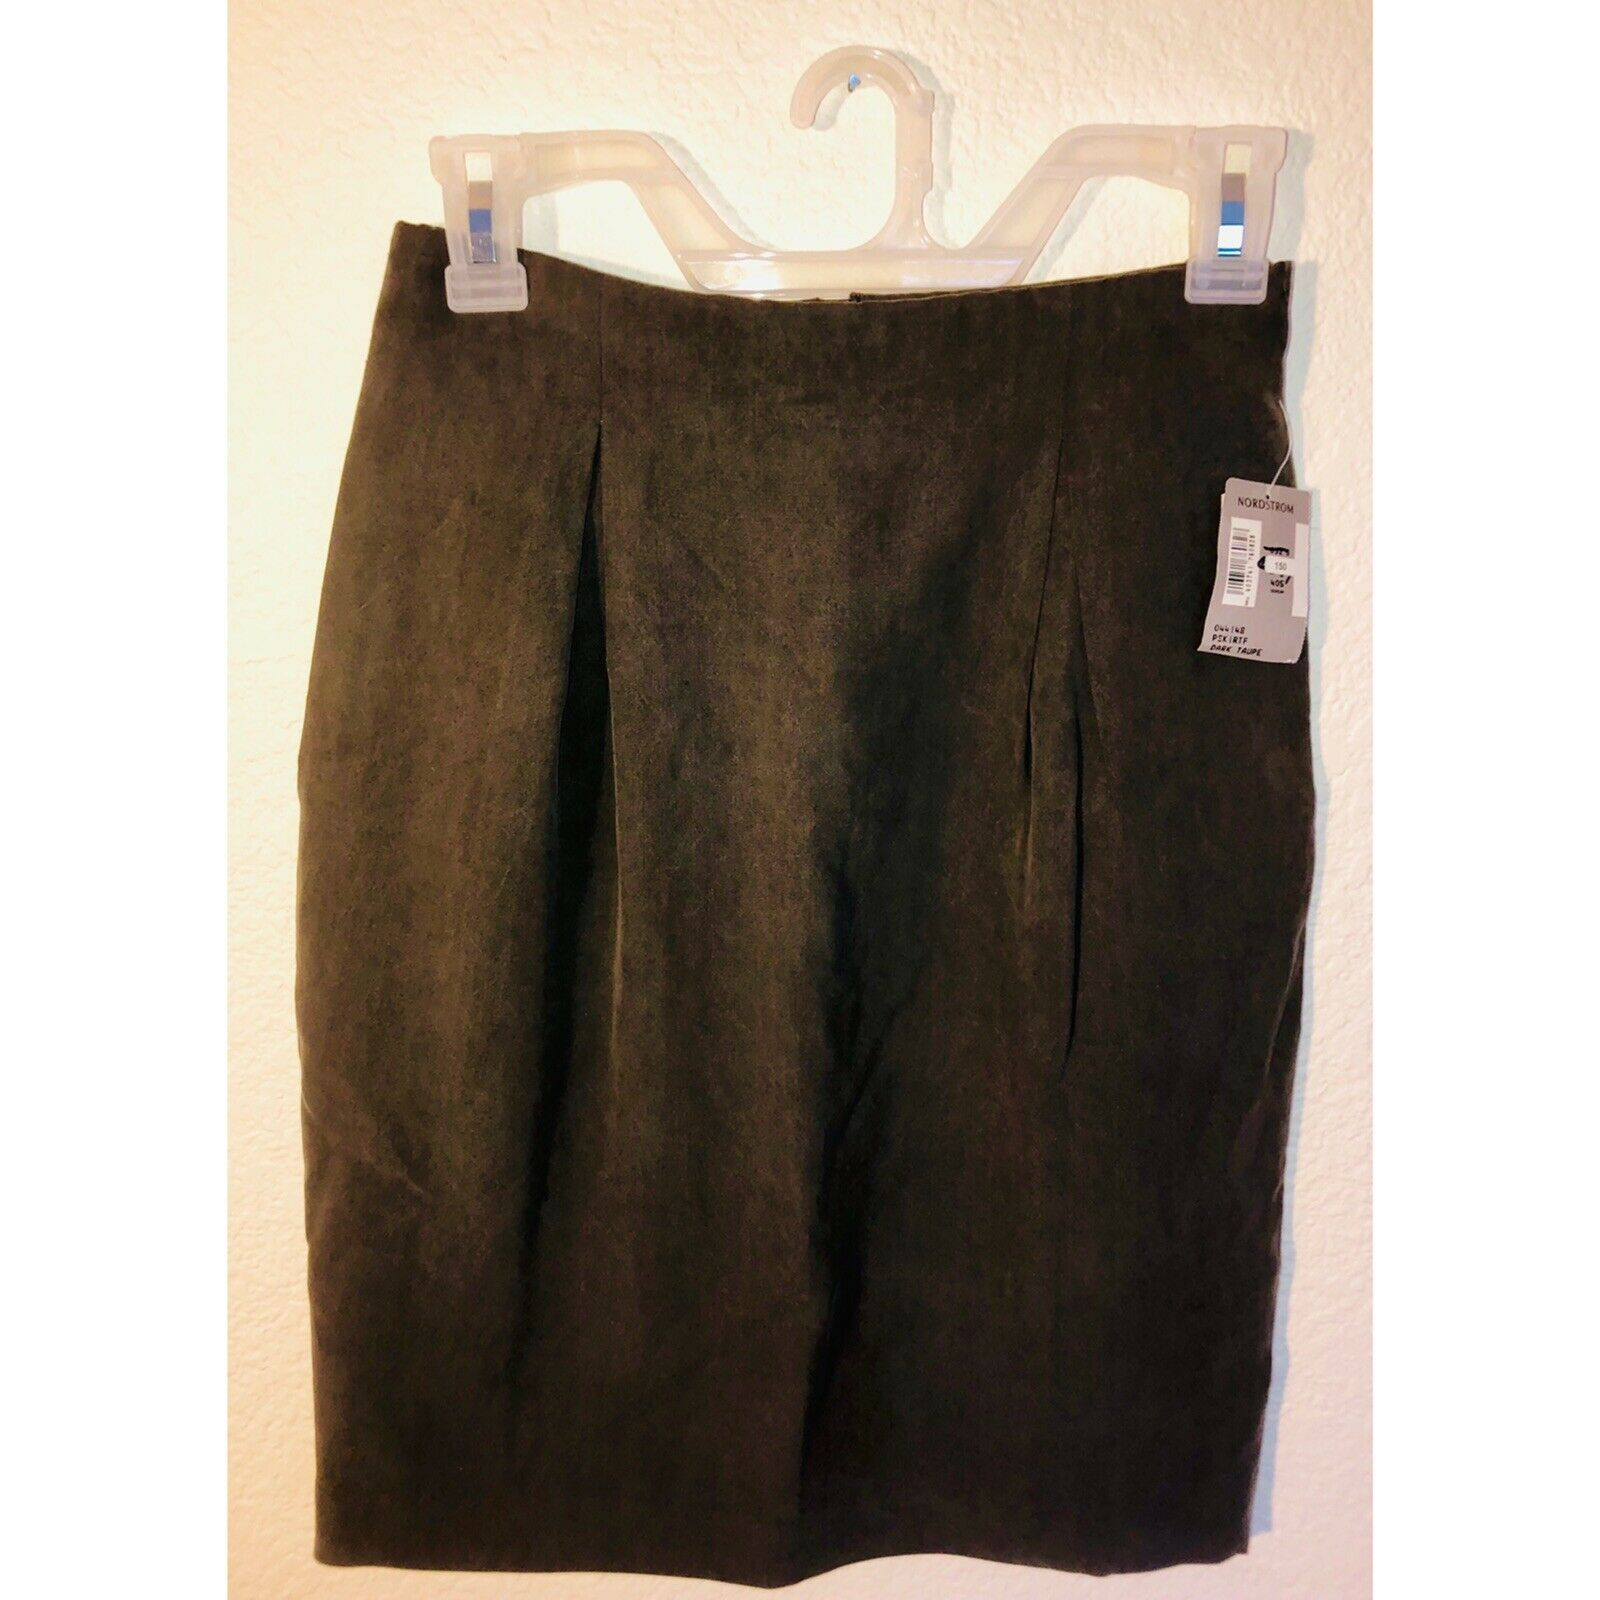 NEW with TAGS Classiques For Nordstrom Petites Dark Taupe Silk Skirt Size 8